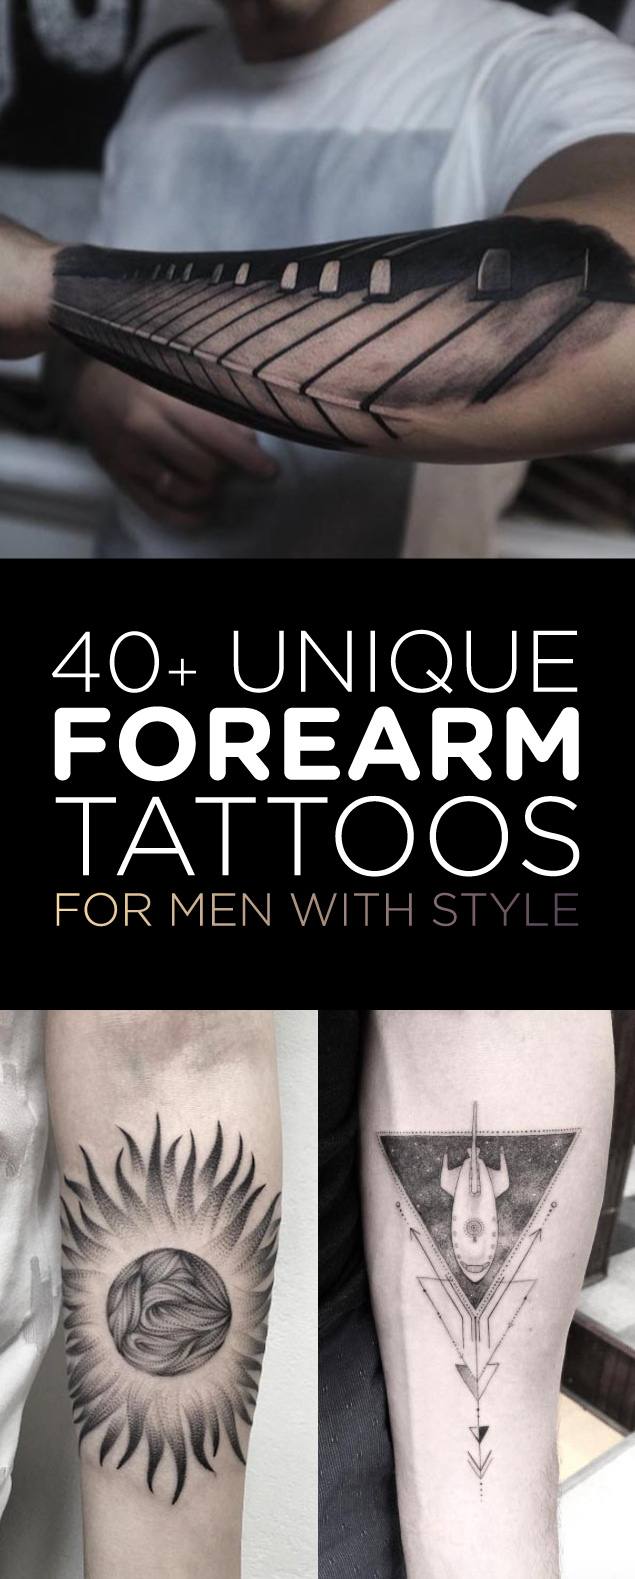 40 Unique Forearm Tattoos For Men With Style Tattooblend Ideas And Designs